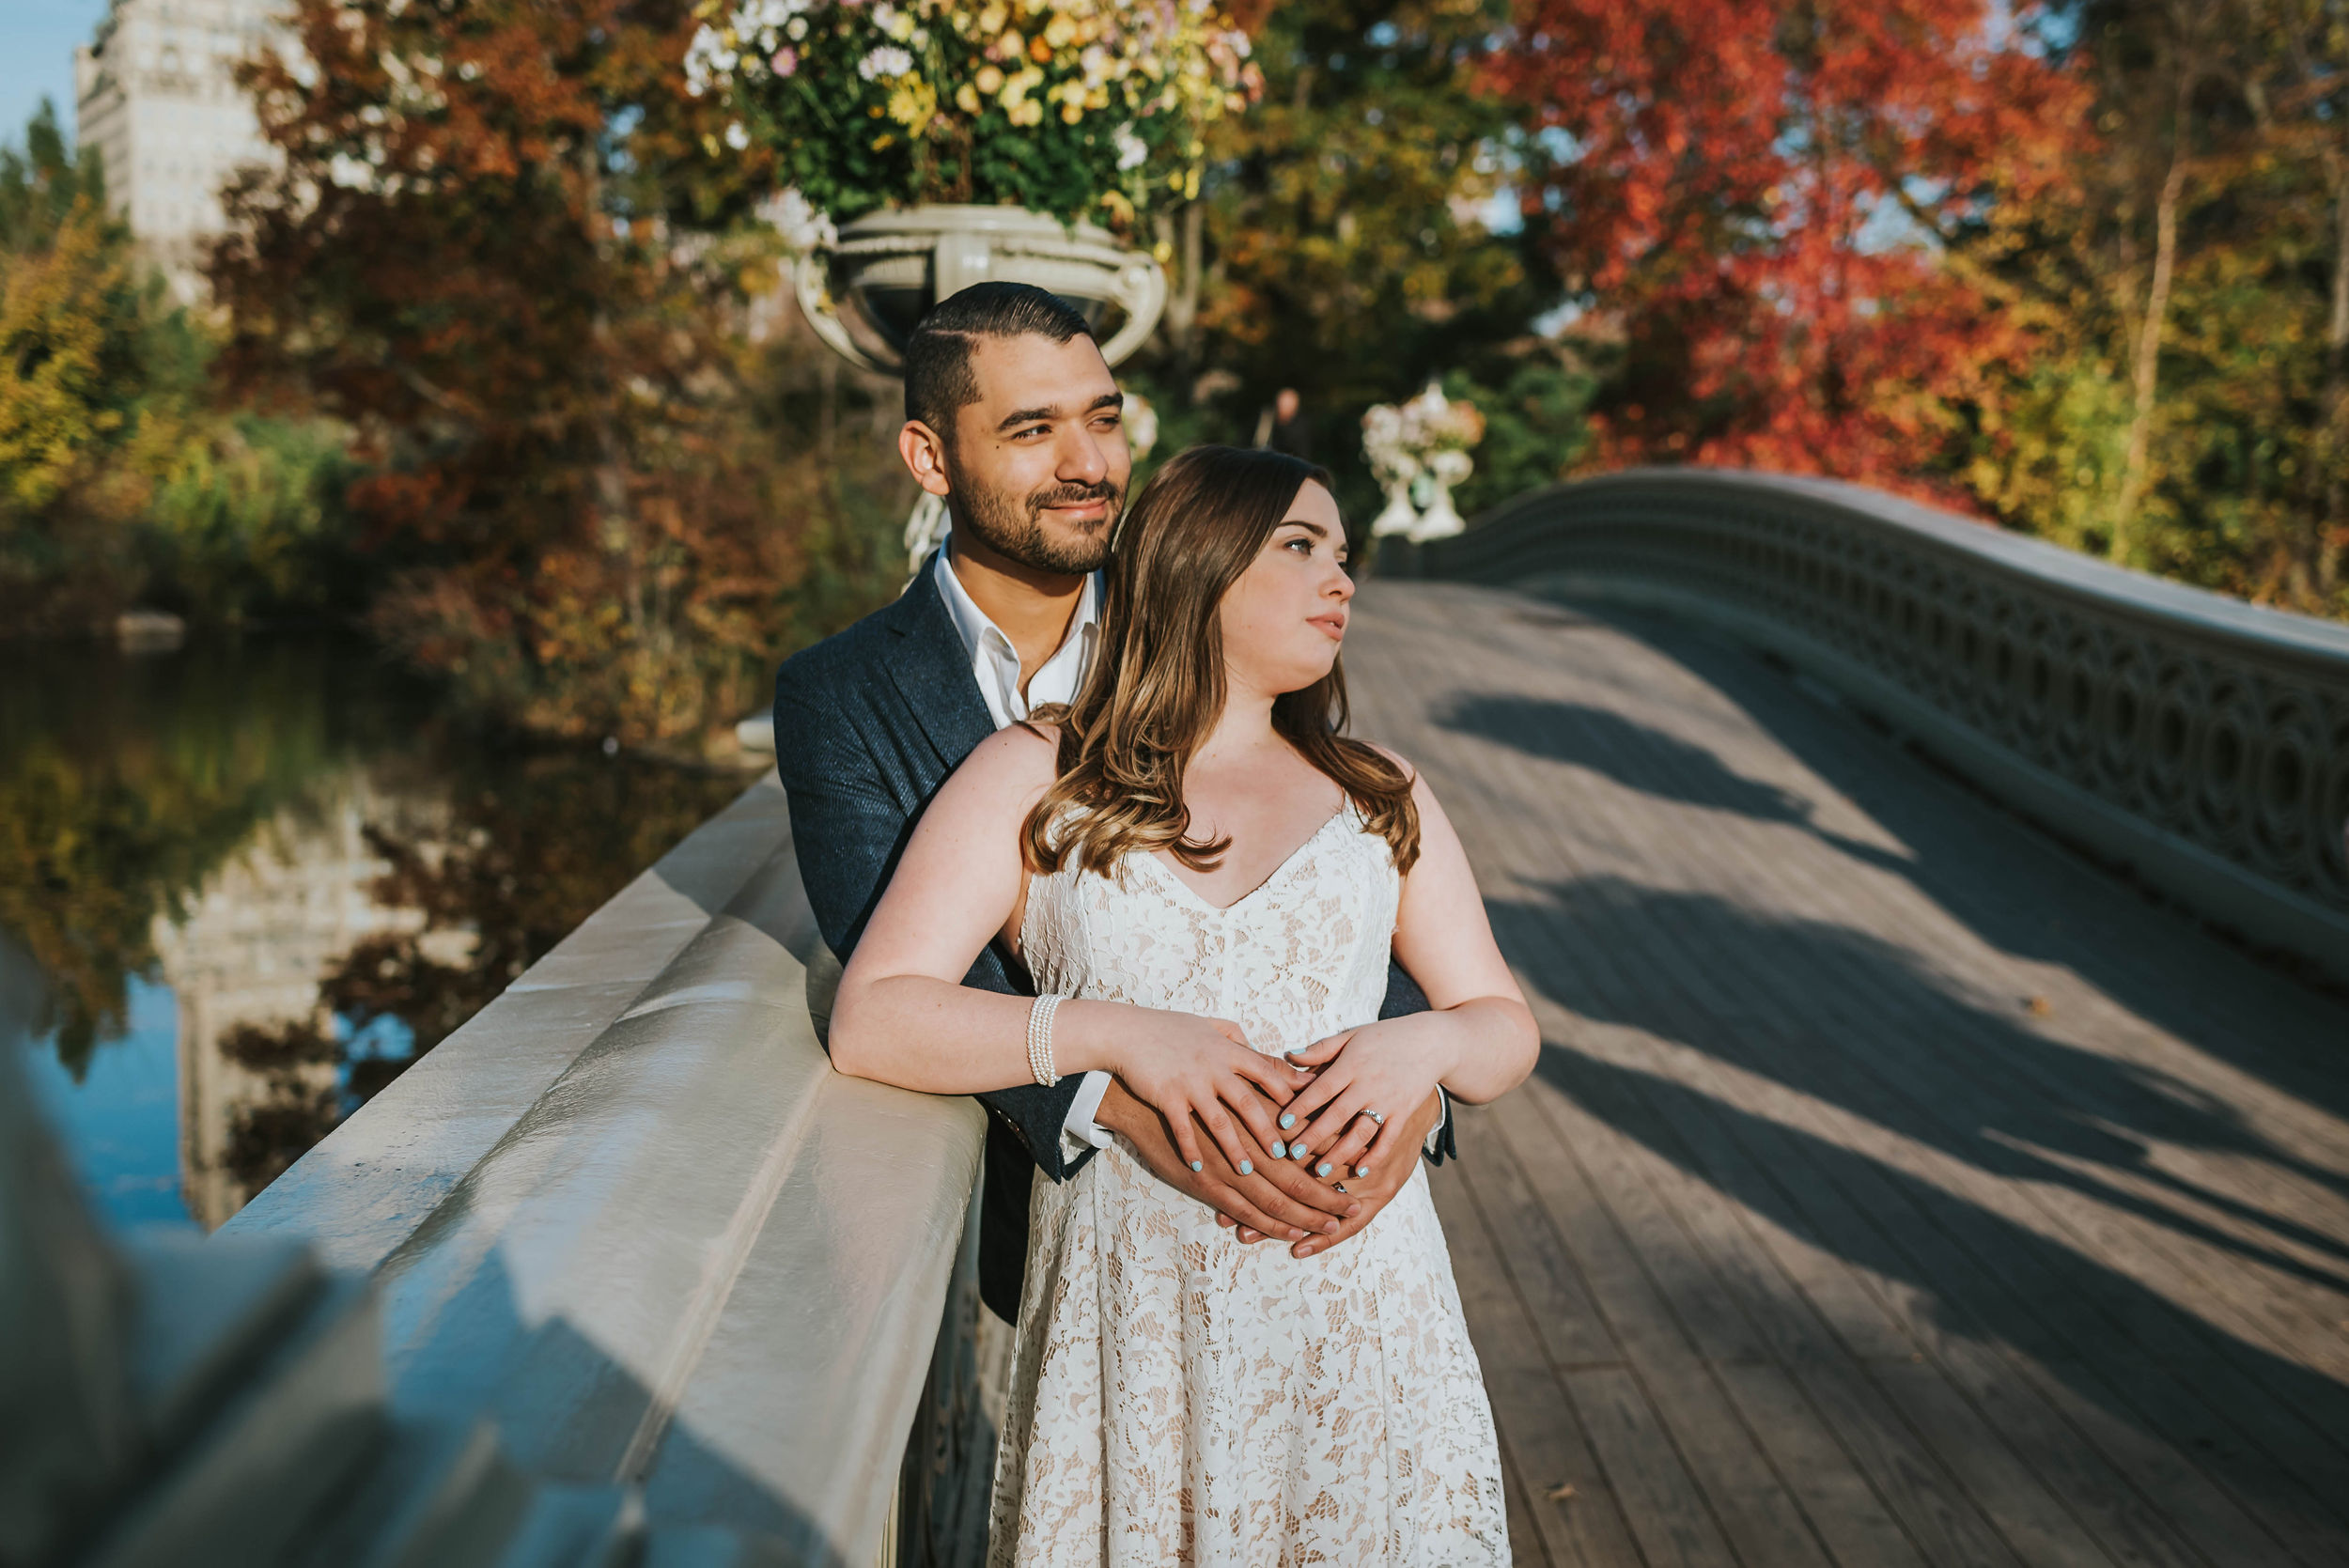 Rebecca and Darryn - Central Park Elopement NYC Manhattan 21.jpg